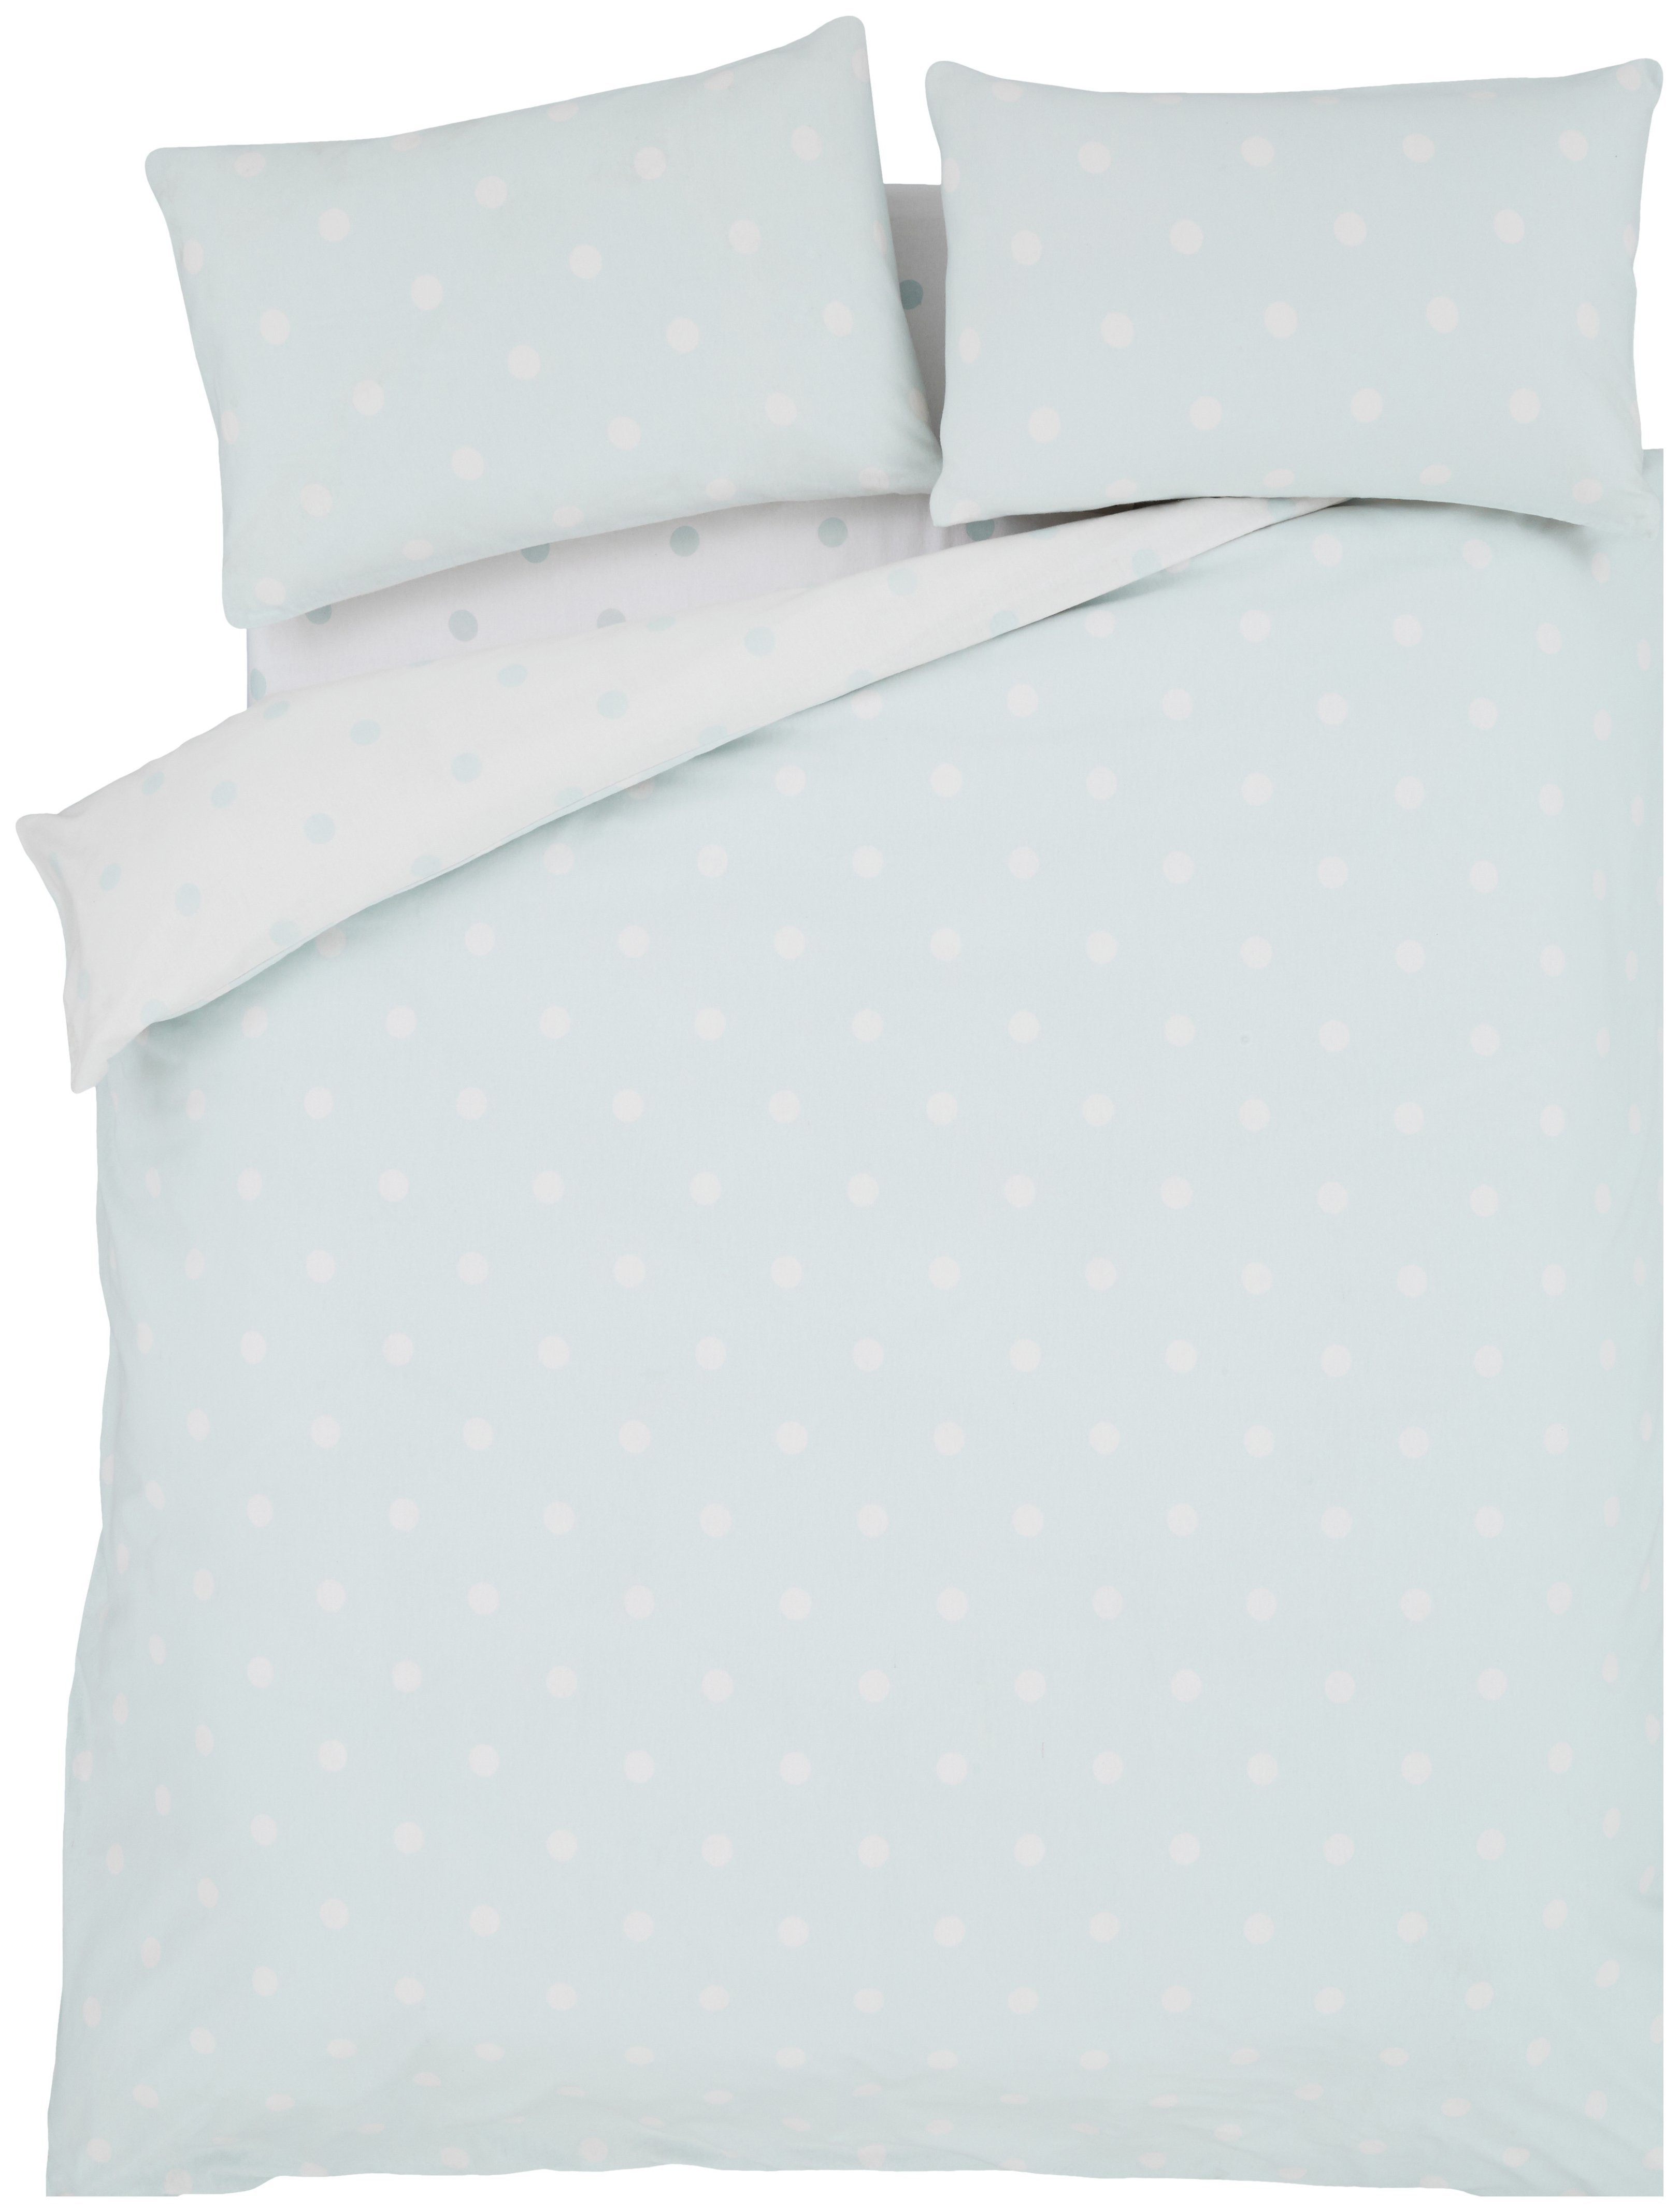 catherine lansfield duck egg polka dot duvet set  double.